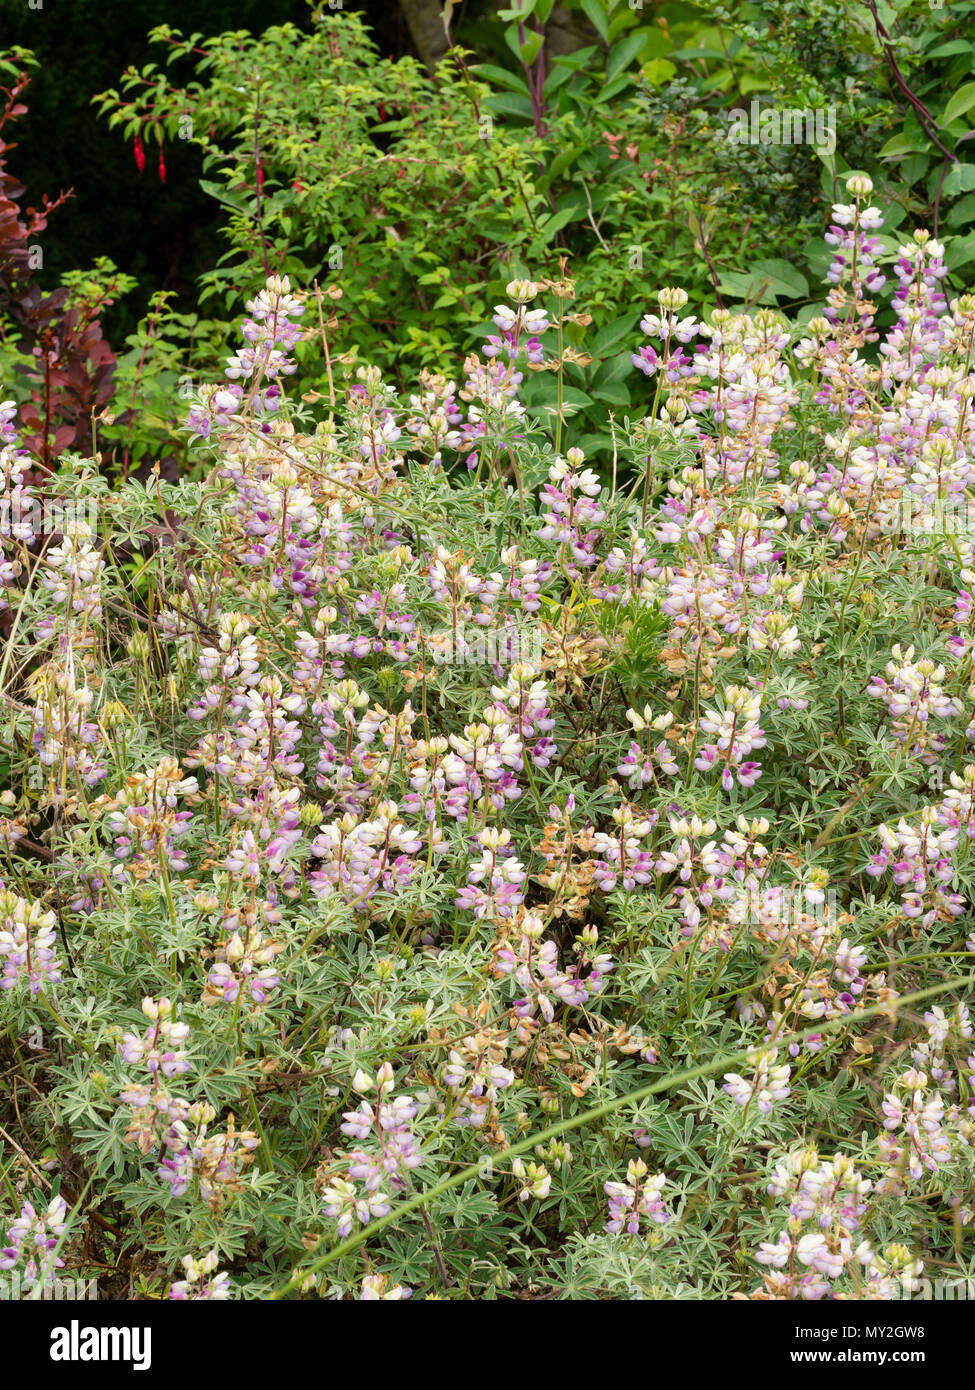 Silvery Foliage And Spikes Of Redwhite And Purple Flowers Of The